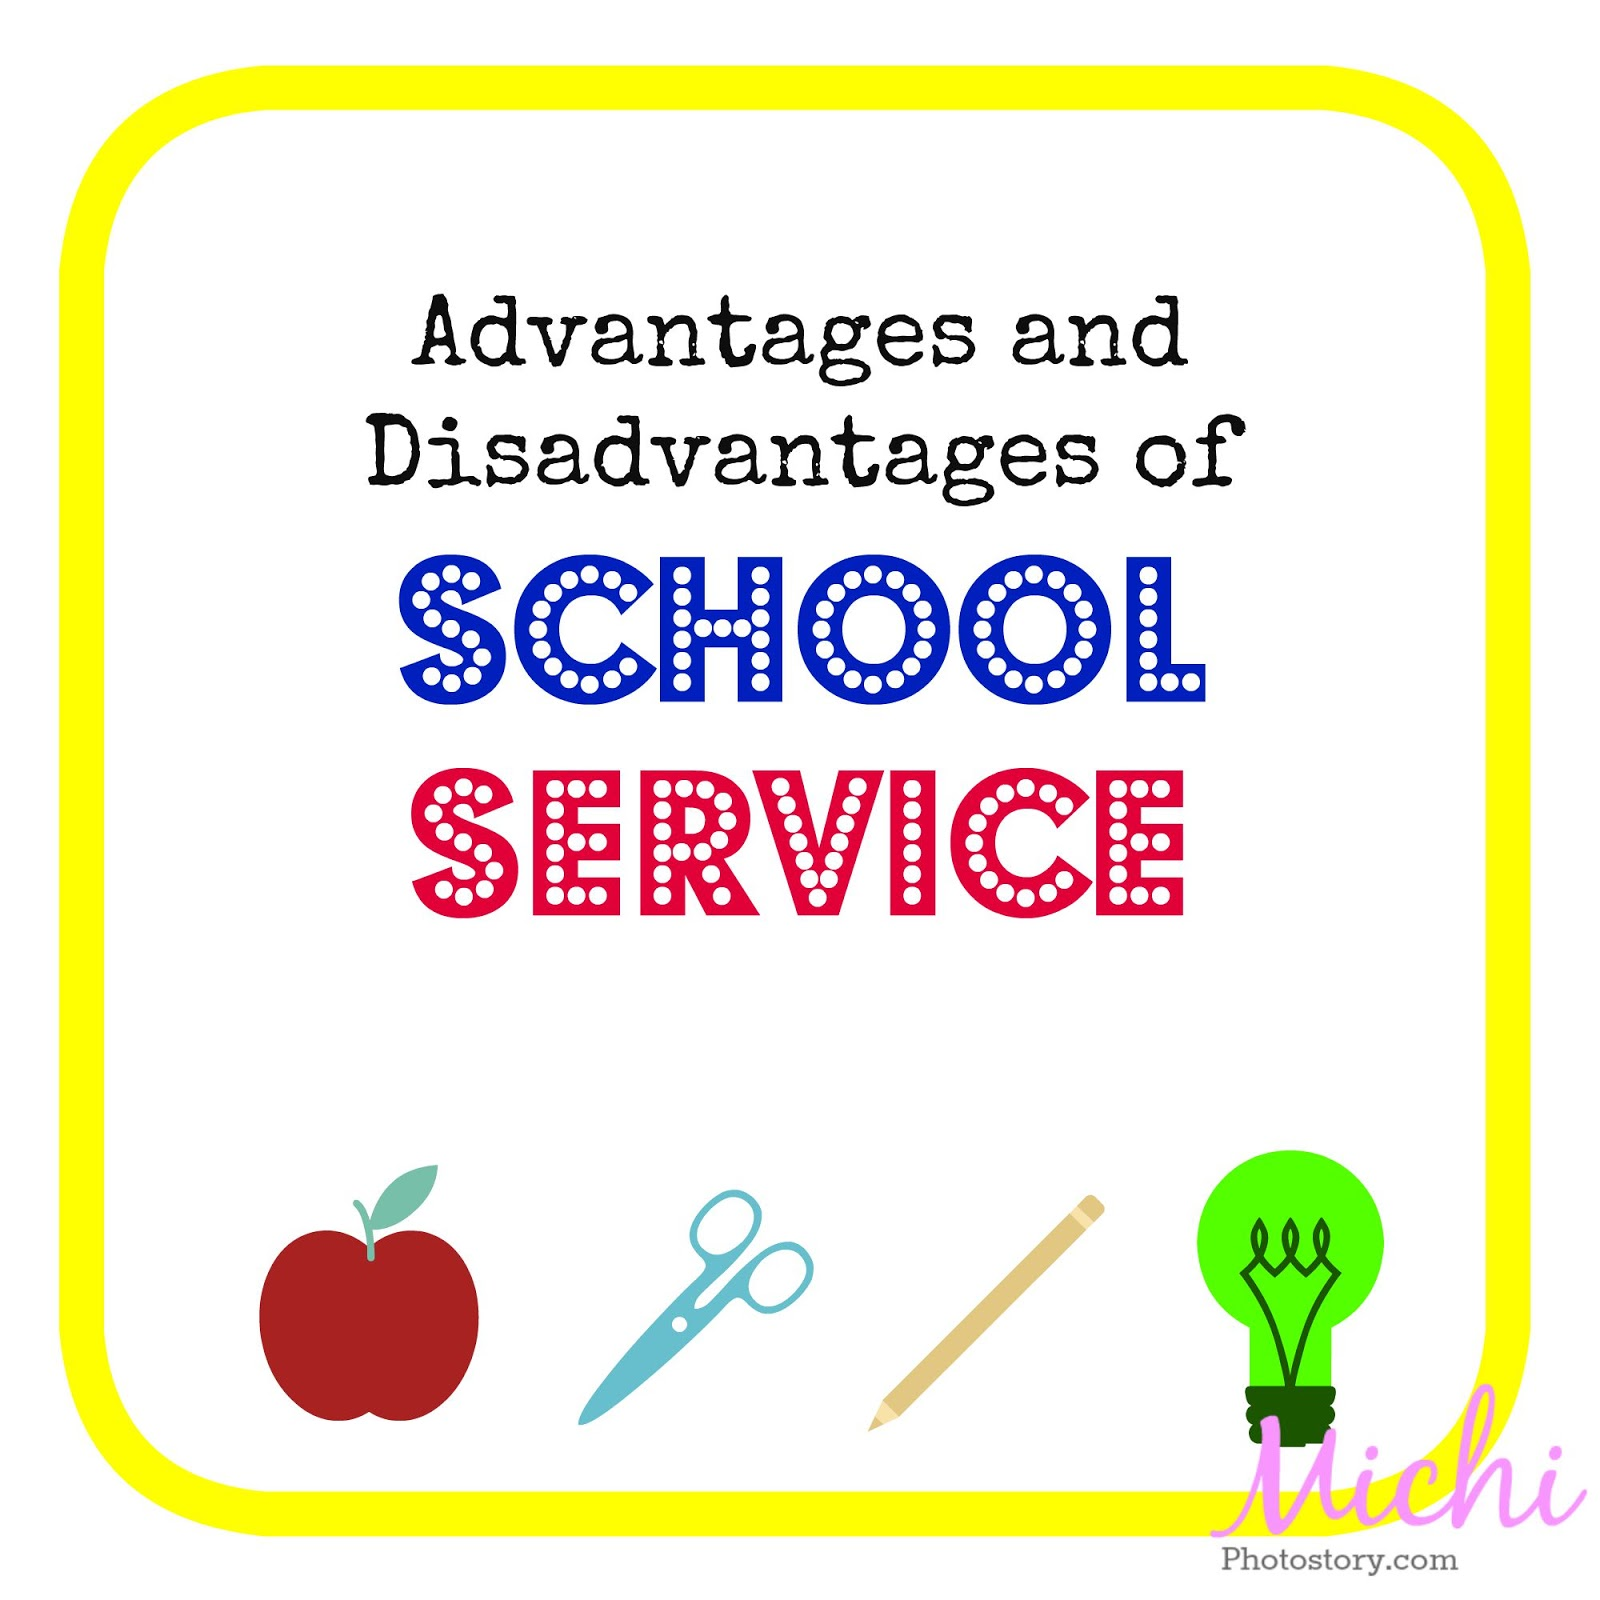 the advantages and disadvantages of school Disadvantages of english medium school 1 heavy school fee 2 economically weaker sections of society cannot afford an english medium school for their children 3 lesser importance to other languages what are the advantages and disadvantages of having one's mother tongue as the medium of instruction during primary education in india.